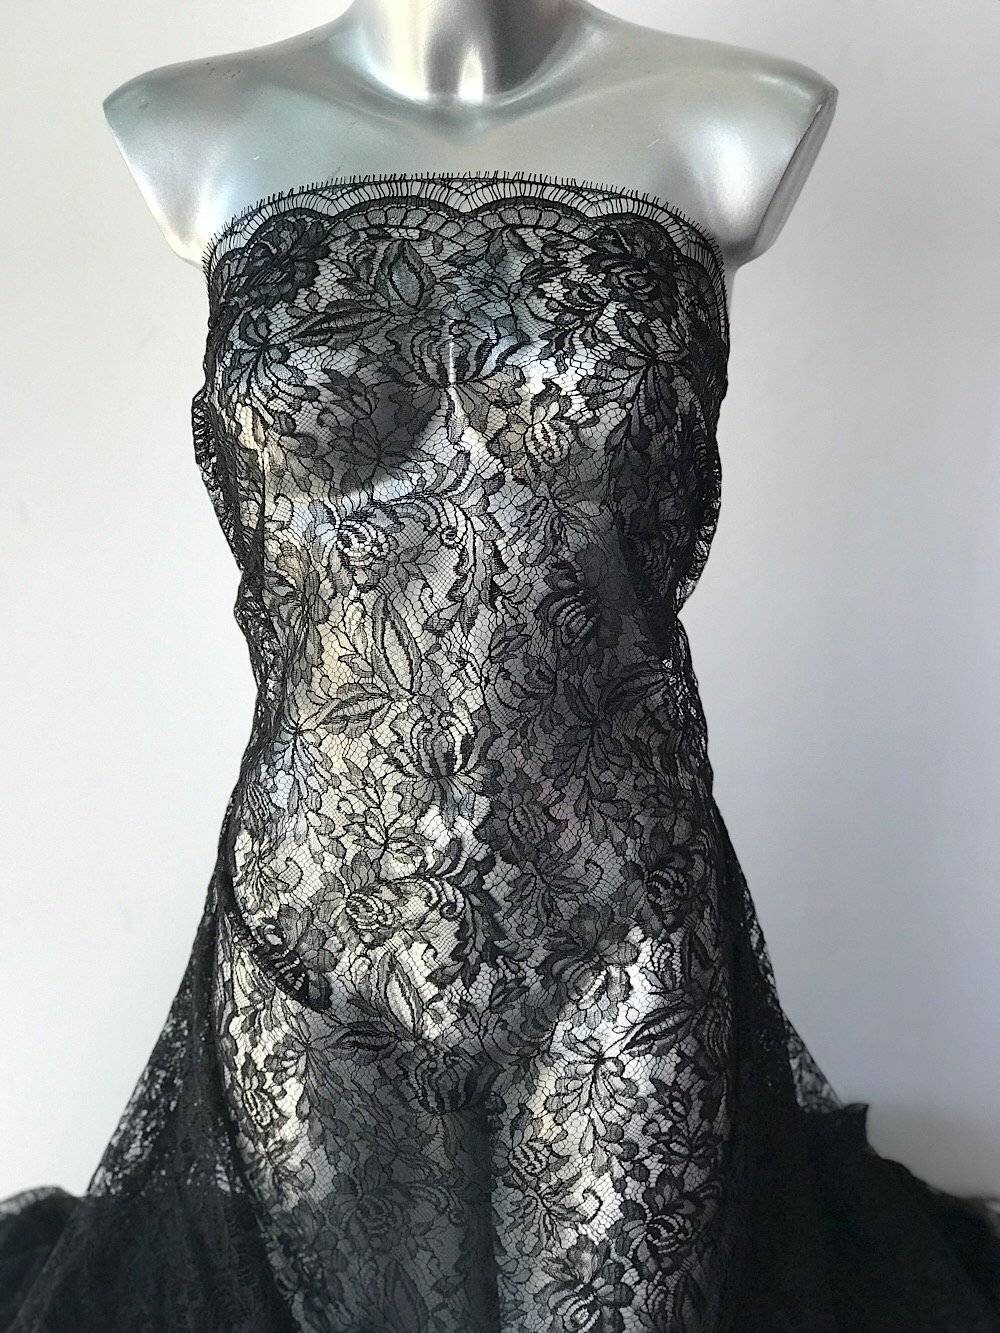 Black lace fabric, French lace Solstiss floral lace scallop edge with eyelash cocktail dress Burlesque, Goth wedding 95cm wide